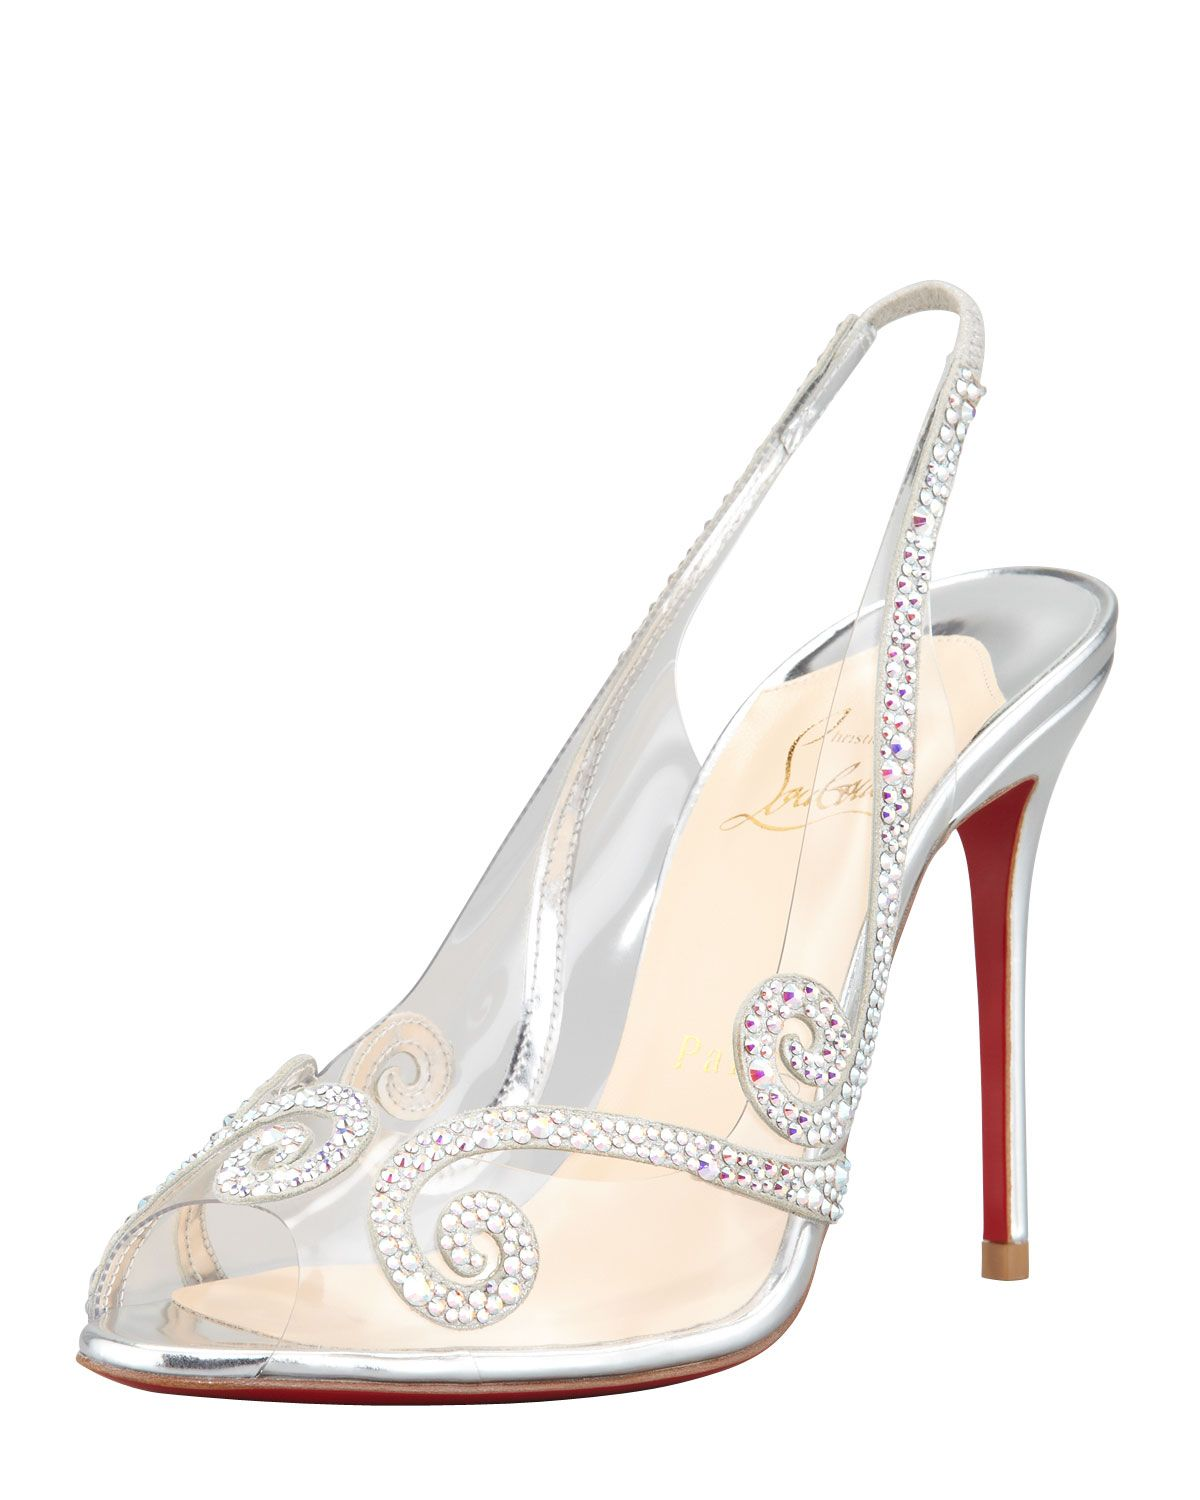 520aba96f85 Pin by ganfang ganfang on test | Shoes, Clear heel shoes, Christian ...